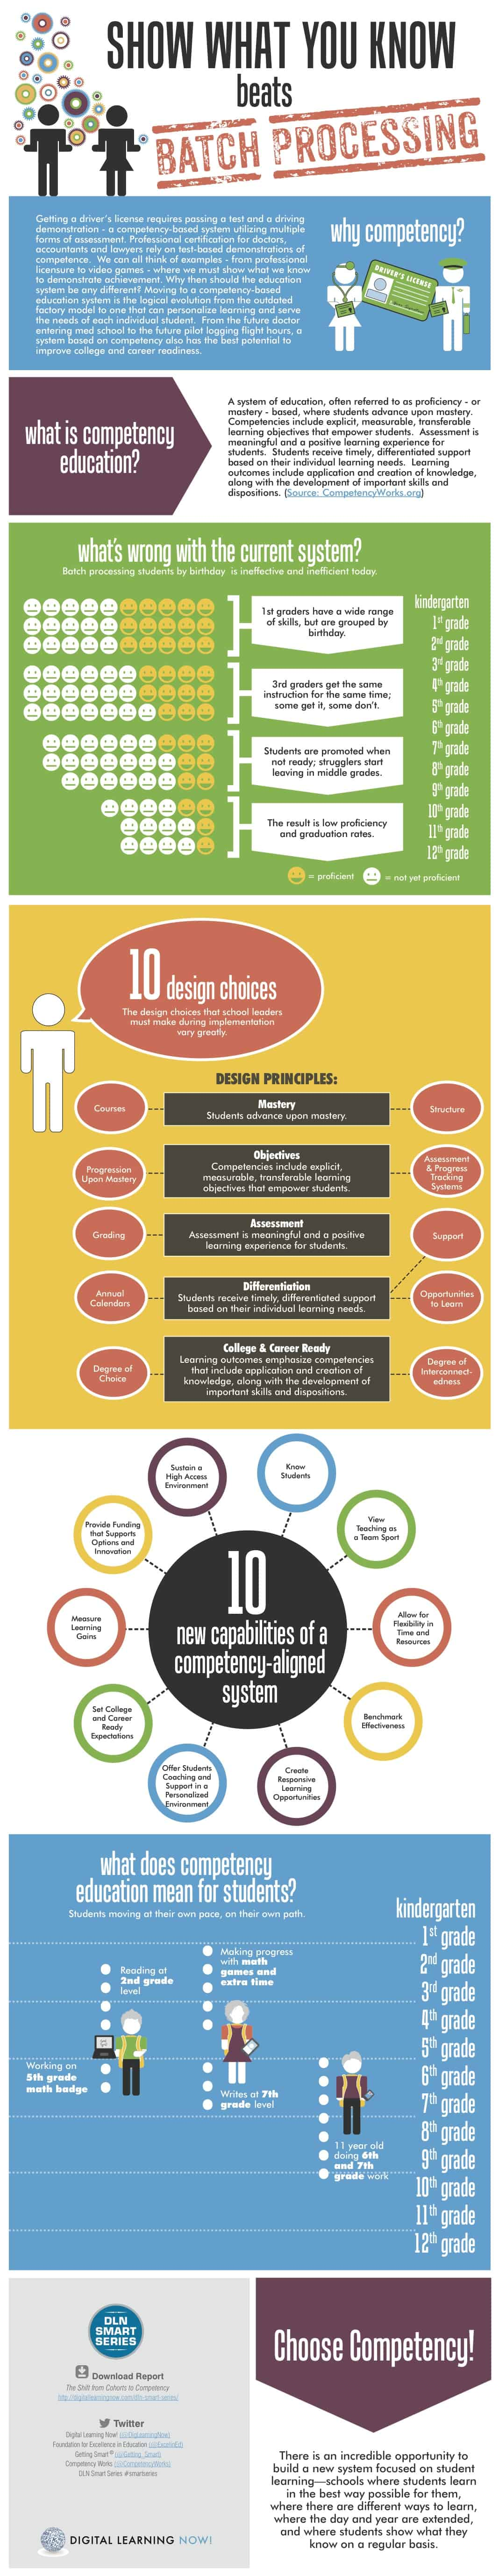 Competency Education Infographic